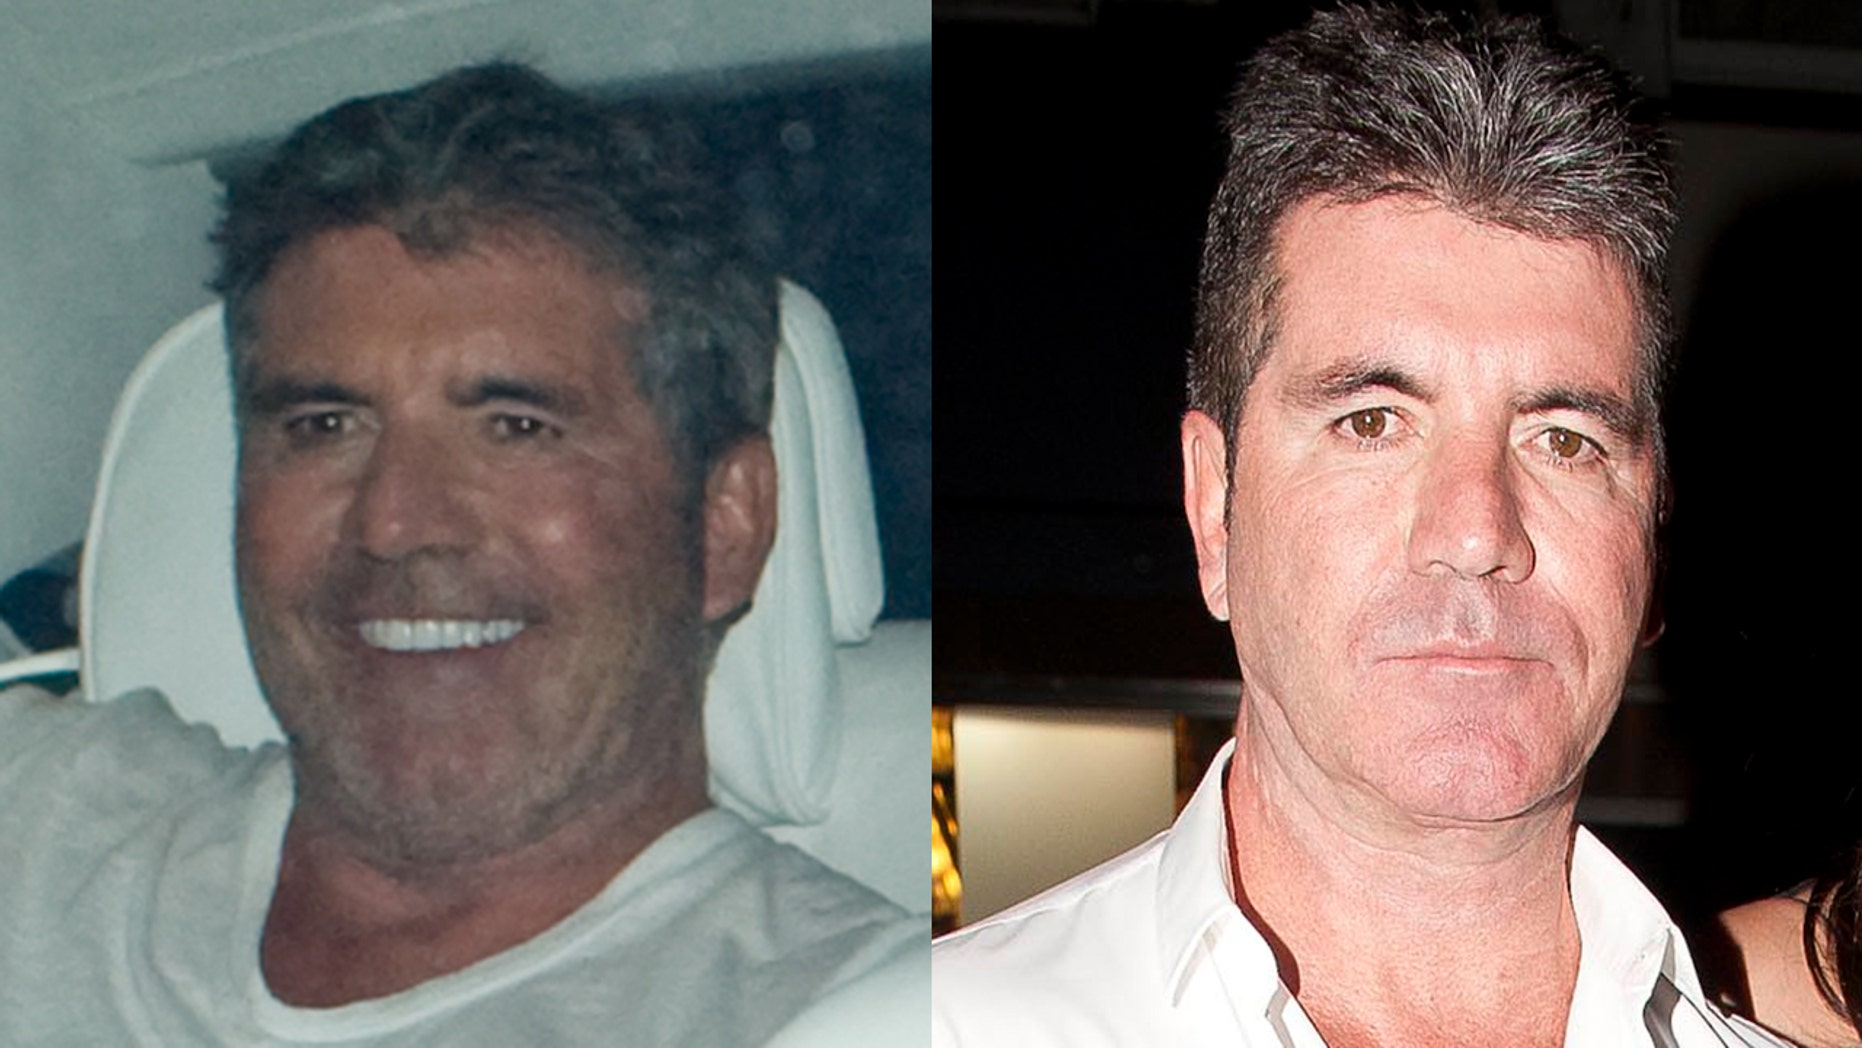 Simon Cowell Shocks Fans With Wide Eyed Taut New Look Fox News